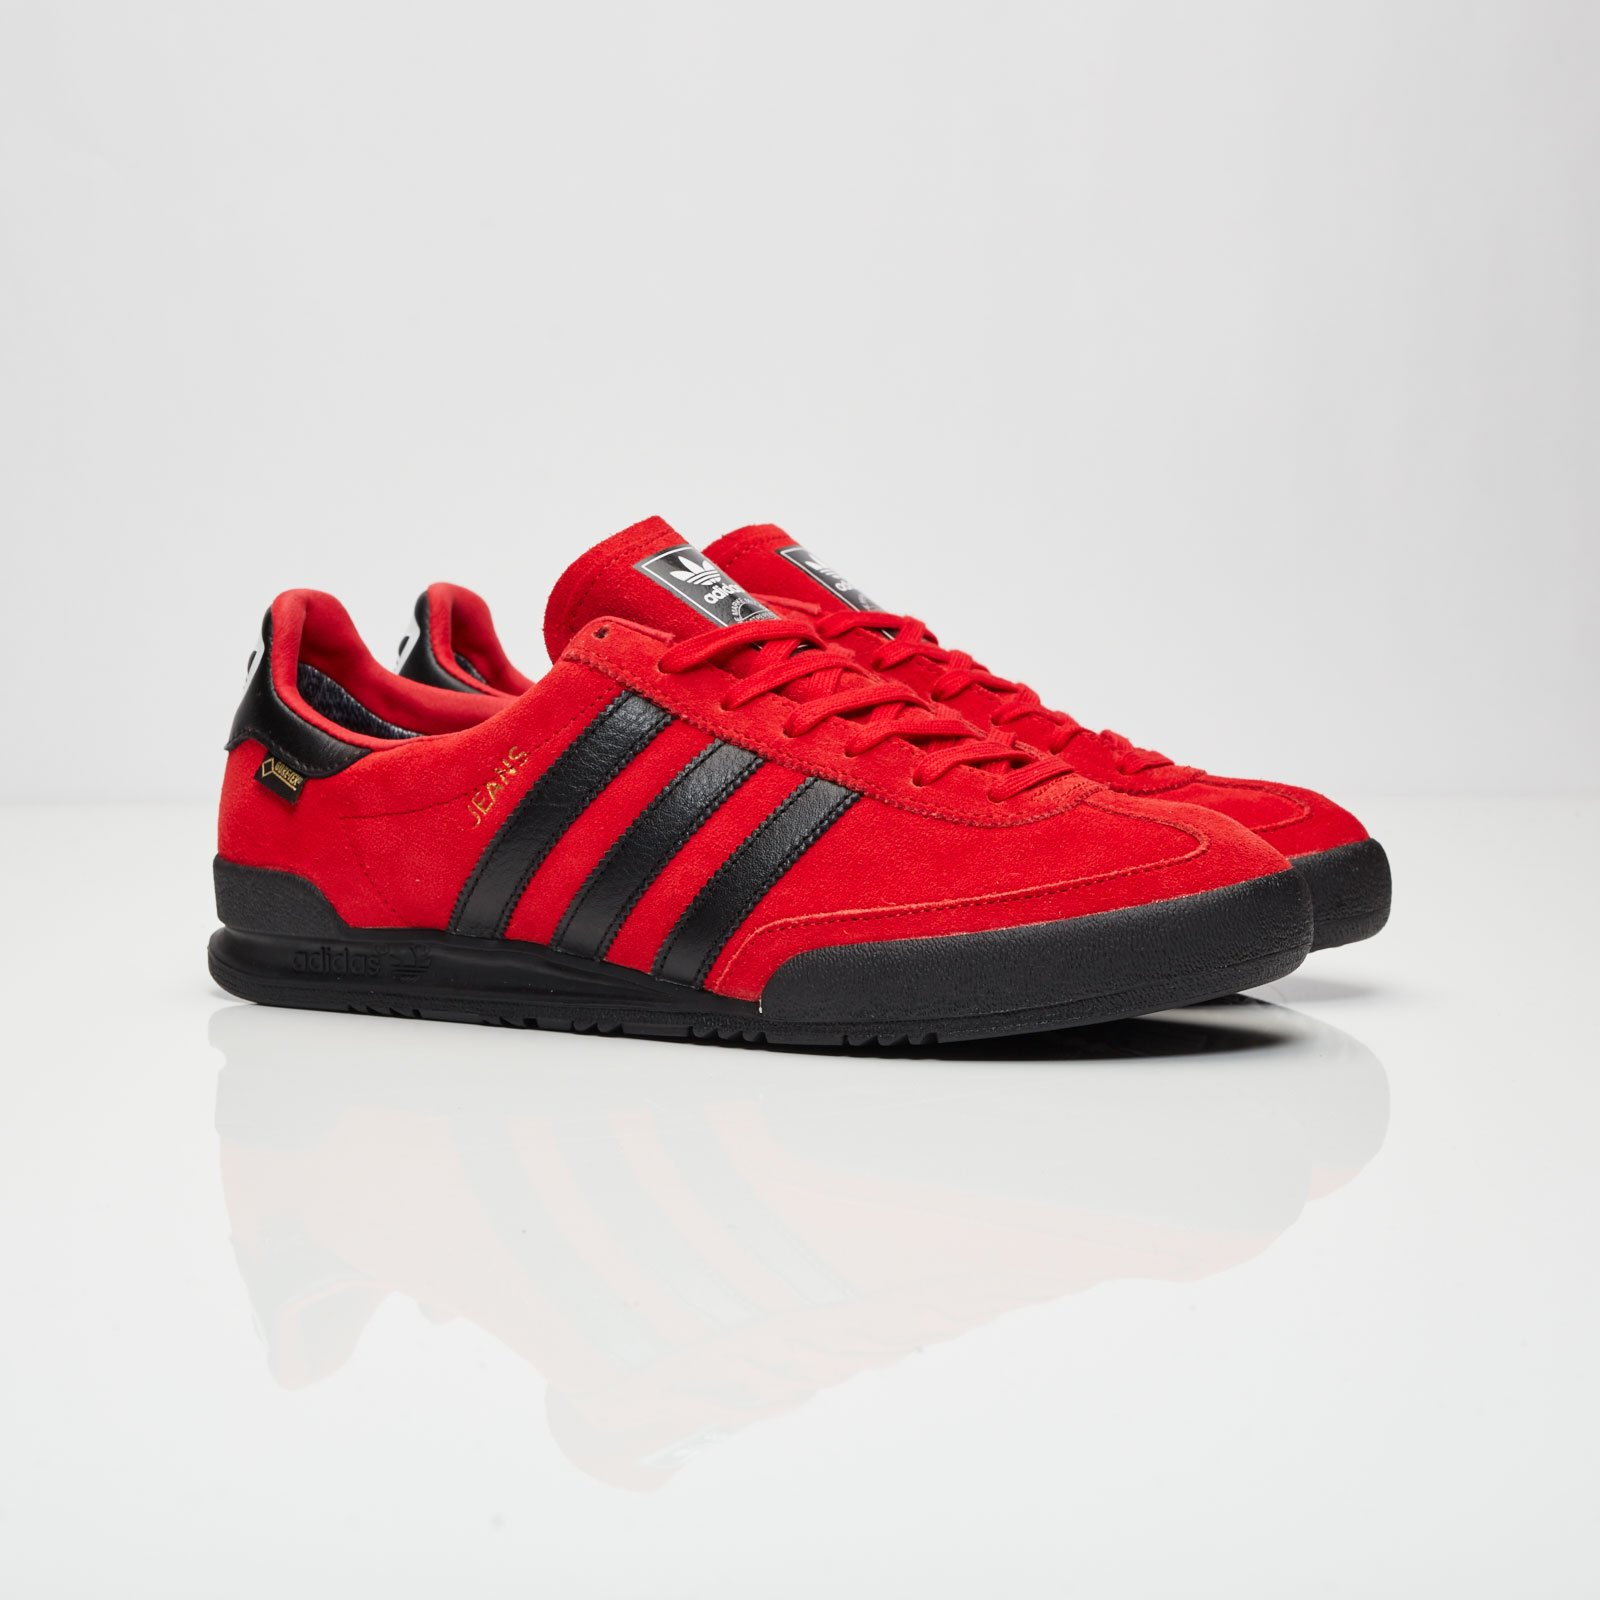 adidas Jeans GTX Leather - S80001